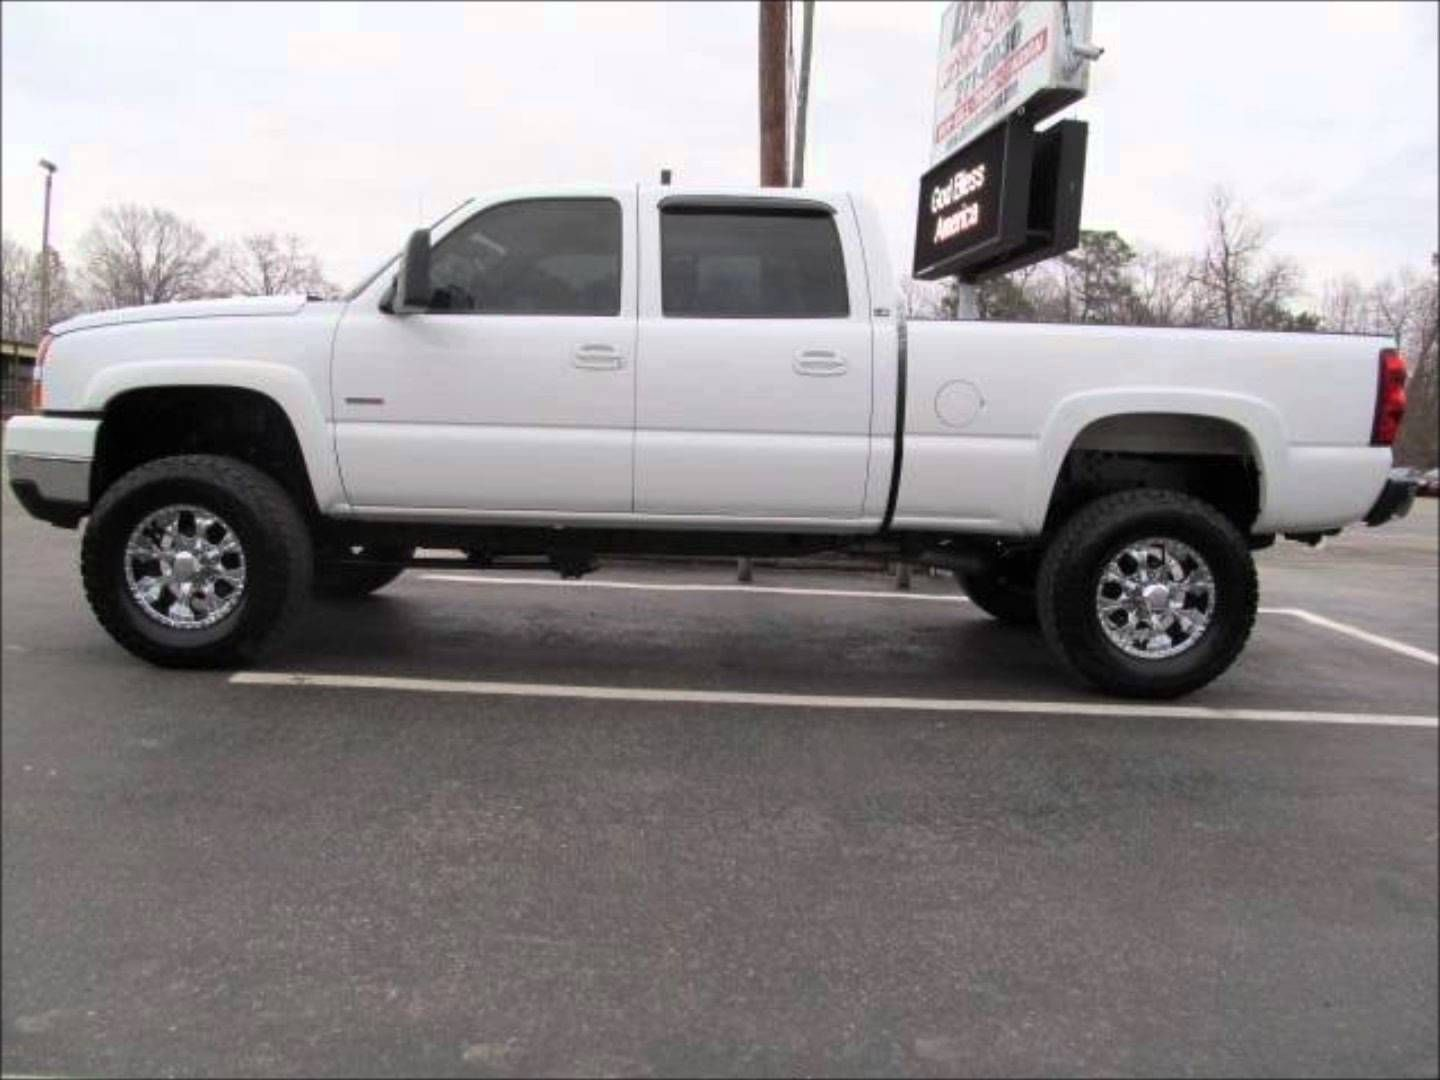 2005 Chevy Silverado 2500 Diesel Lifted Truck For Sale Chevy Silverado 2500 2004 Chevy Silverado Chevy Silverado